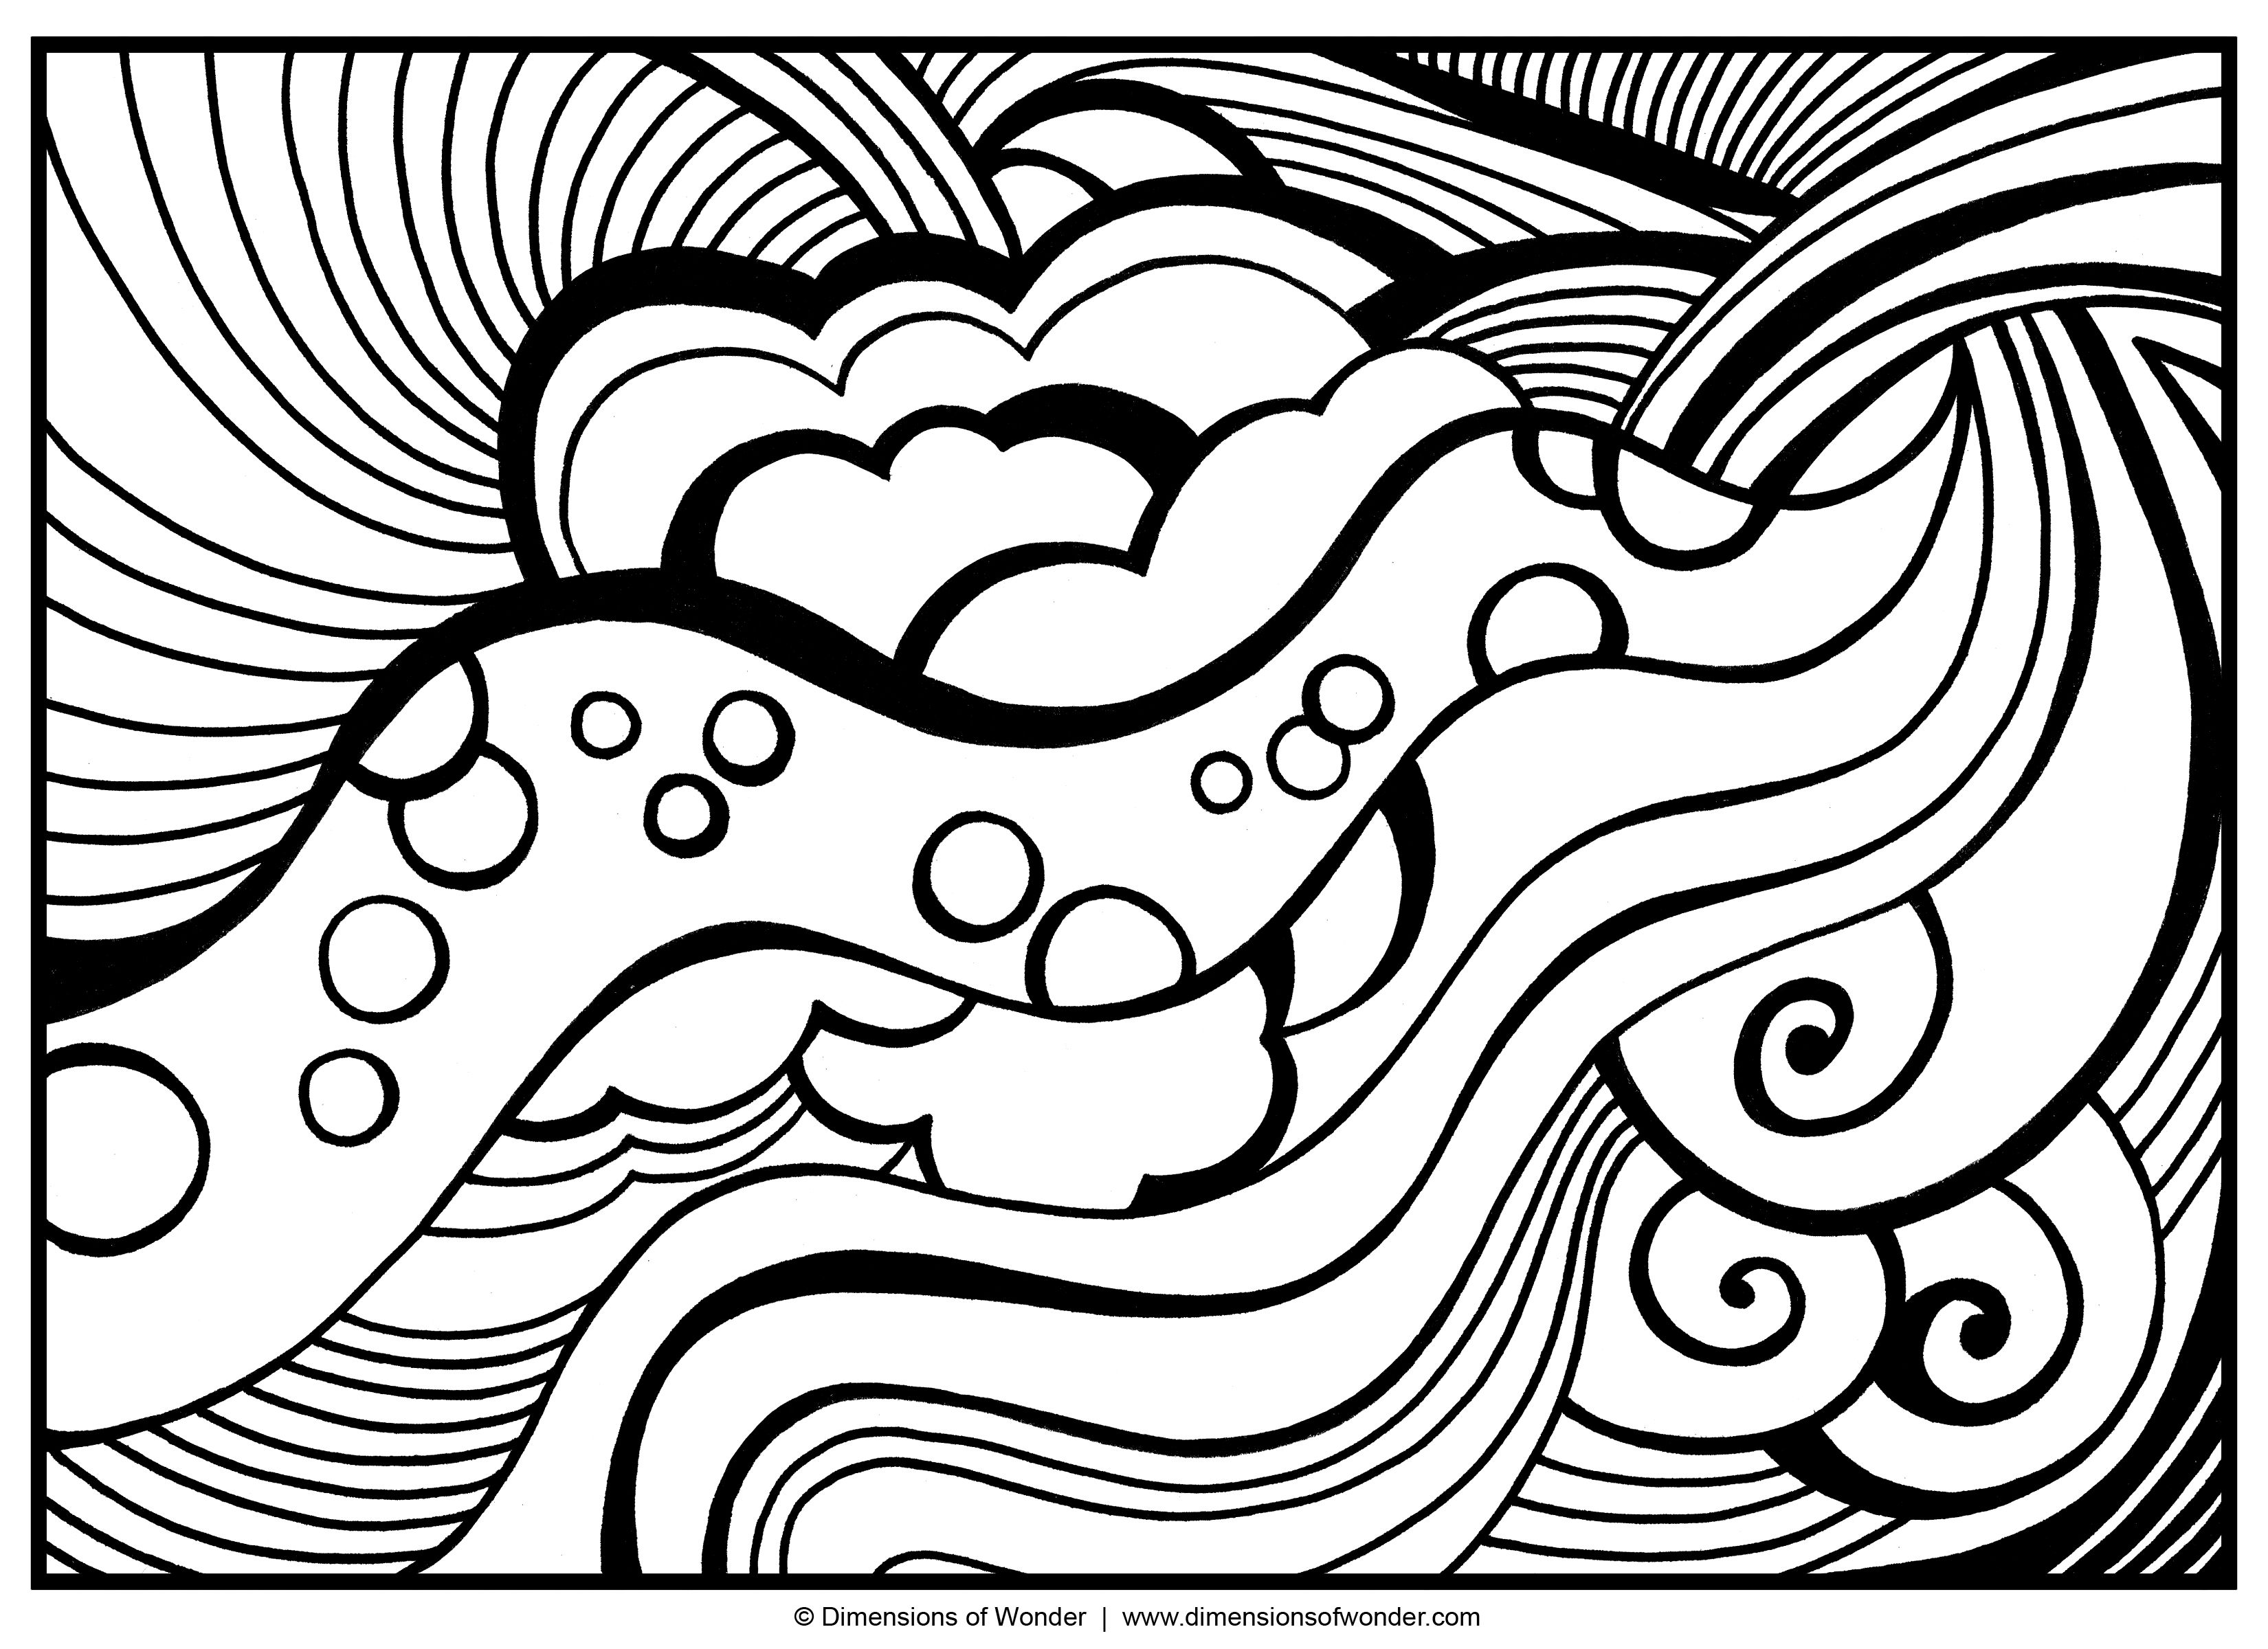 abstract coloring pages - Free Large Images  Abstract coloring